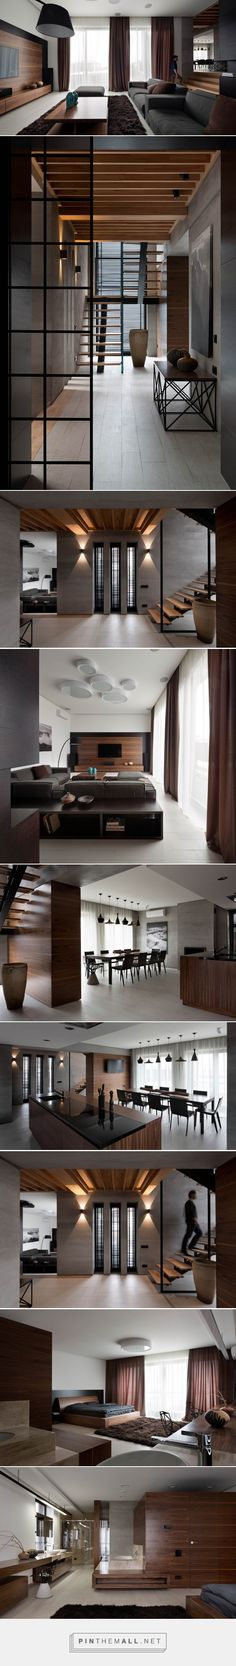 A Palette Of Gray And Walnut Completes The Redesign Of This Family Home | CONTEMPORIST - created via http://pinthemall.net